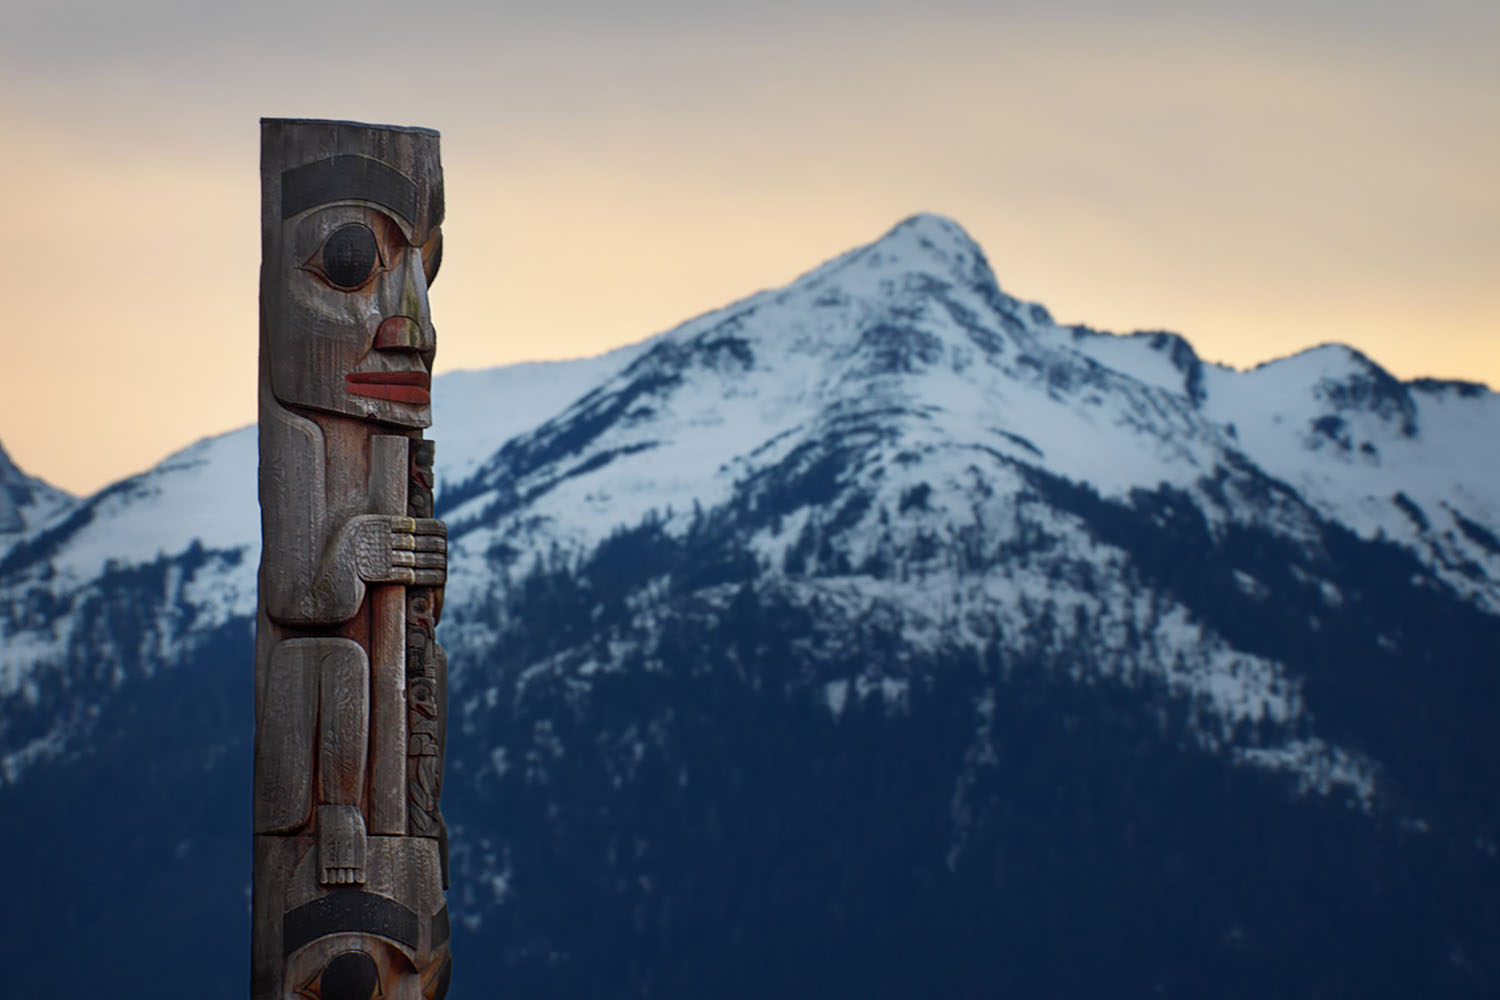 A totem pole looking towards and mountain in Alaska.